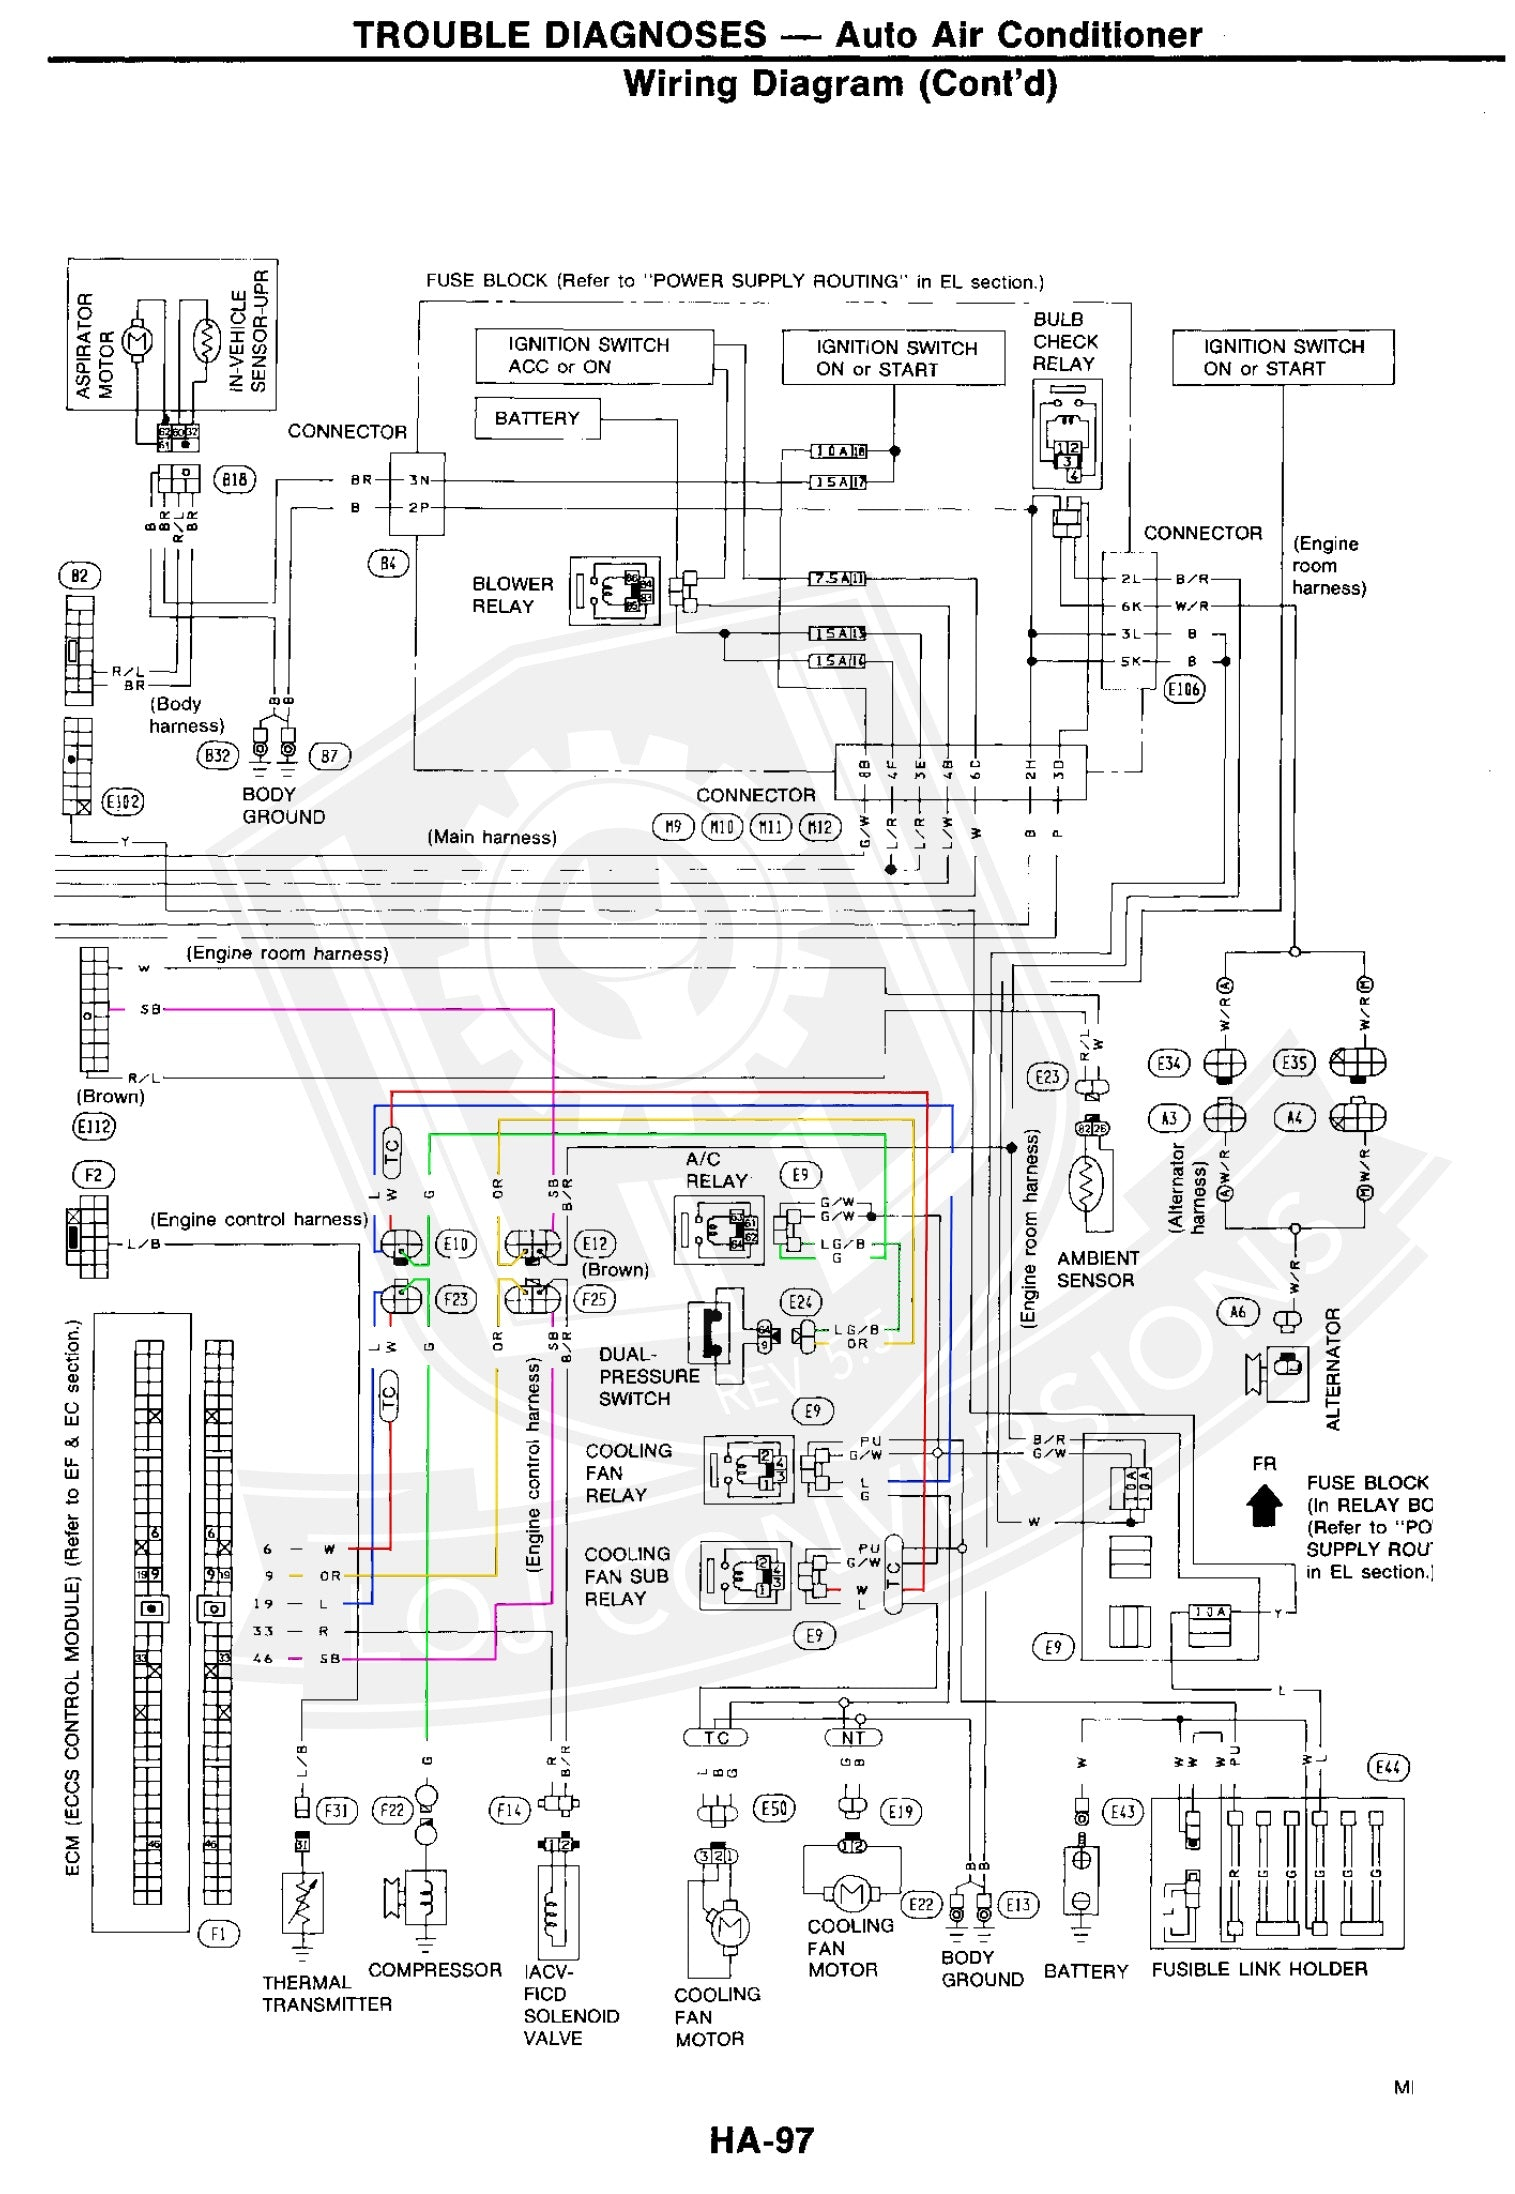 wiring the ac in a 300zx engine conversion loj conversions rh lojkits com 300ZX Engine Diagram 1994 300ZX Wiring Harness Diagram